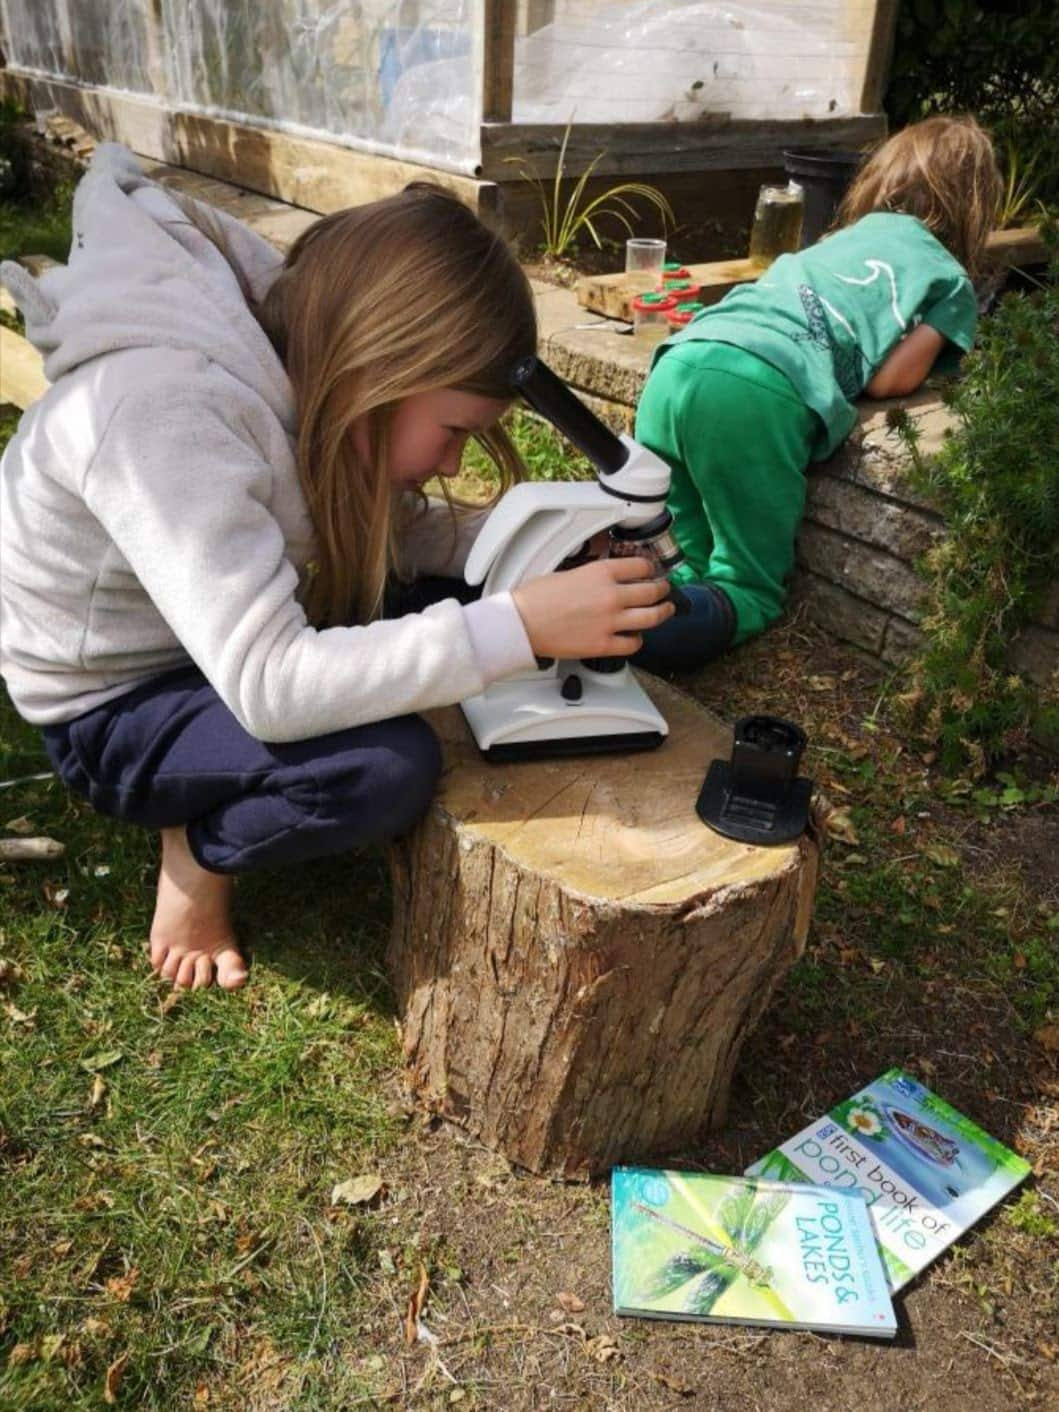 children in the garden - one looking into pond, one with microscope